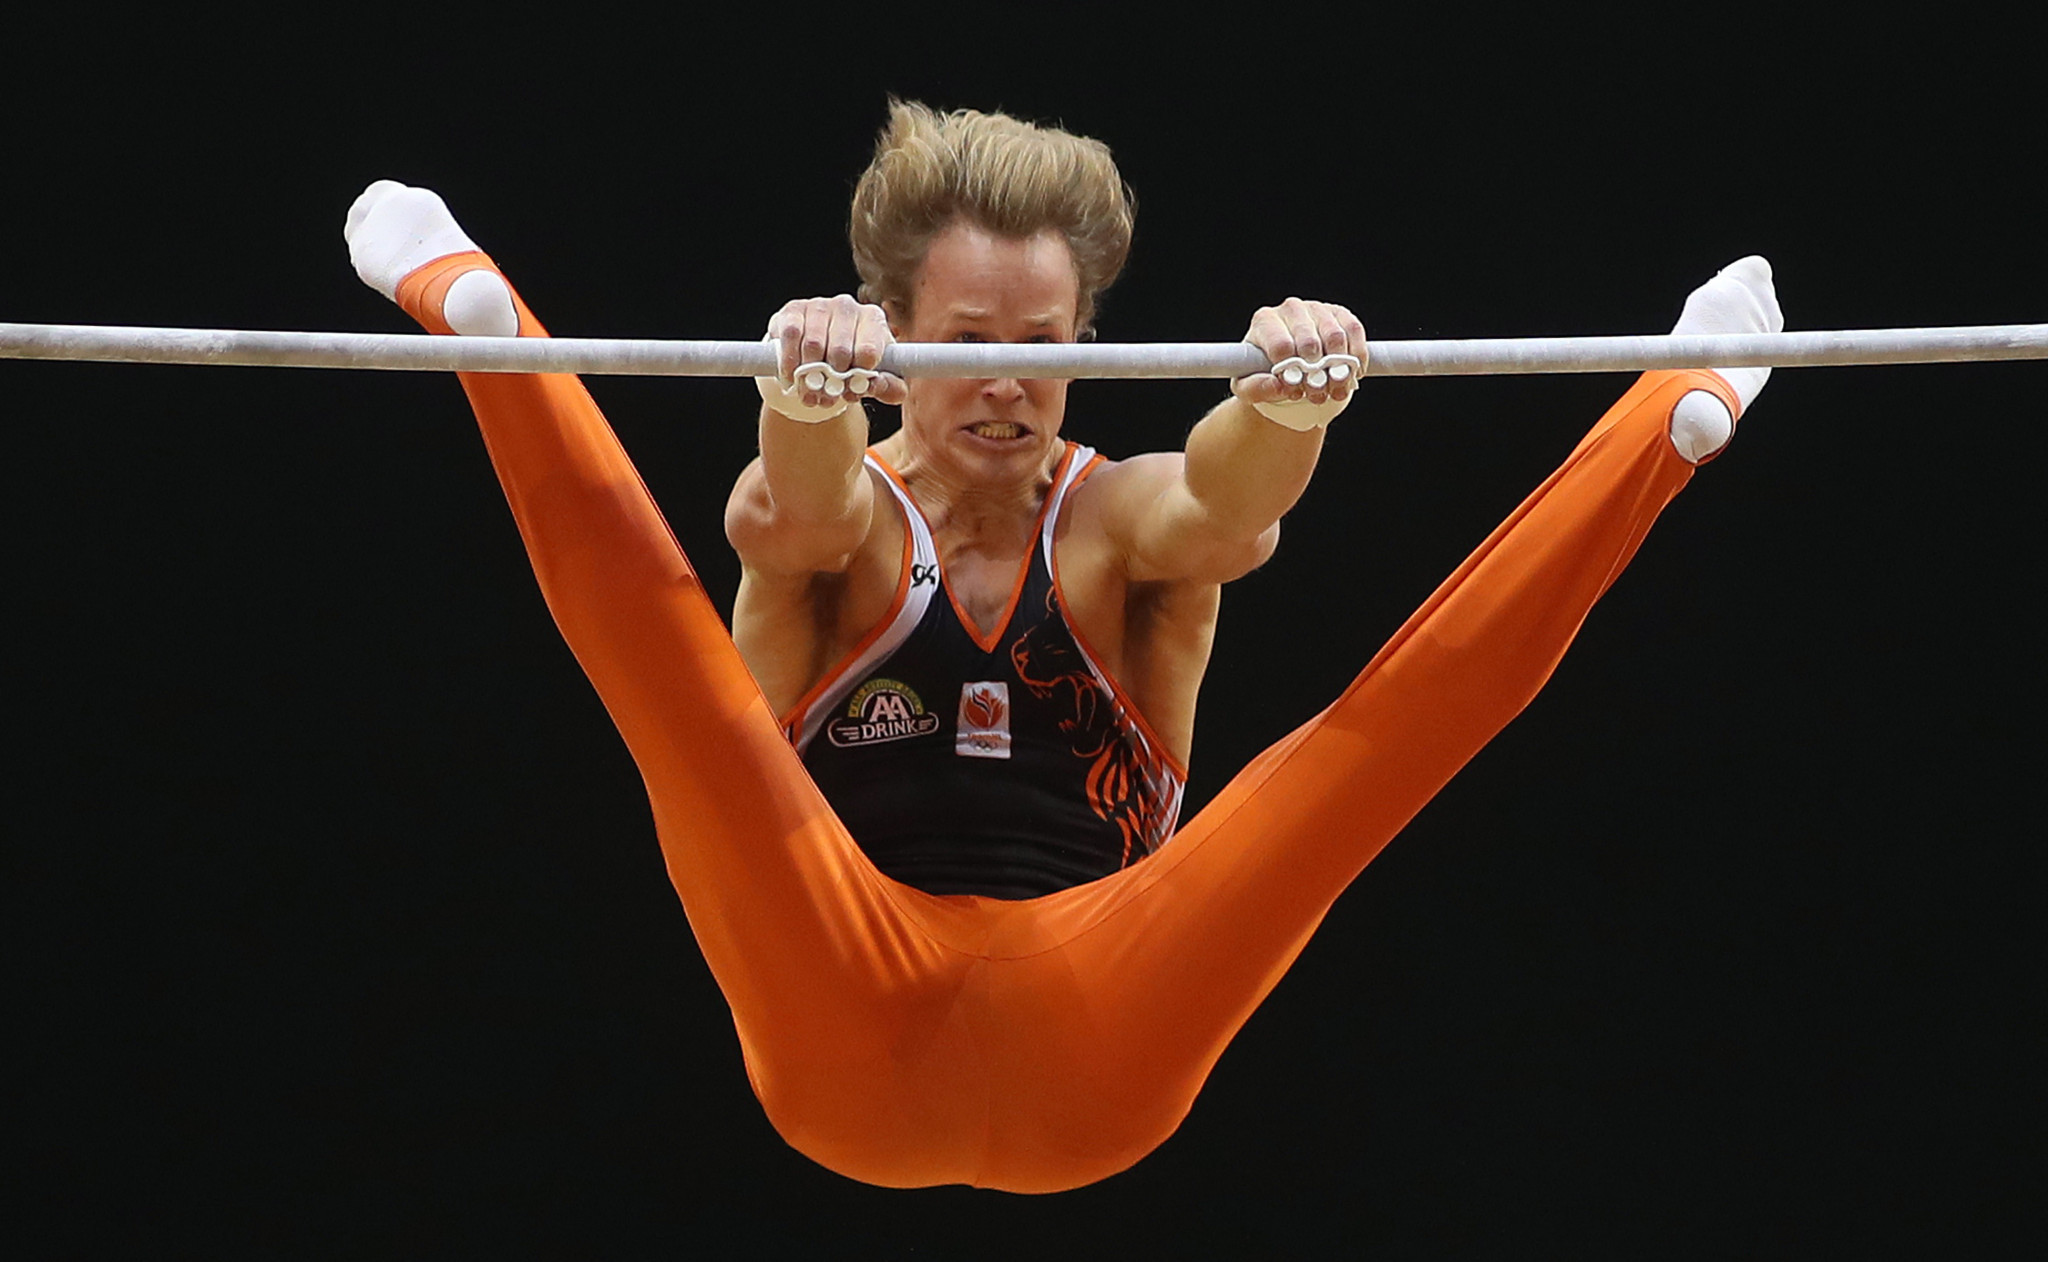 Epke Zonderland will be among those to watch in Baku ©Getty Images